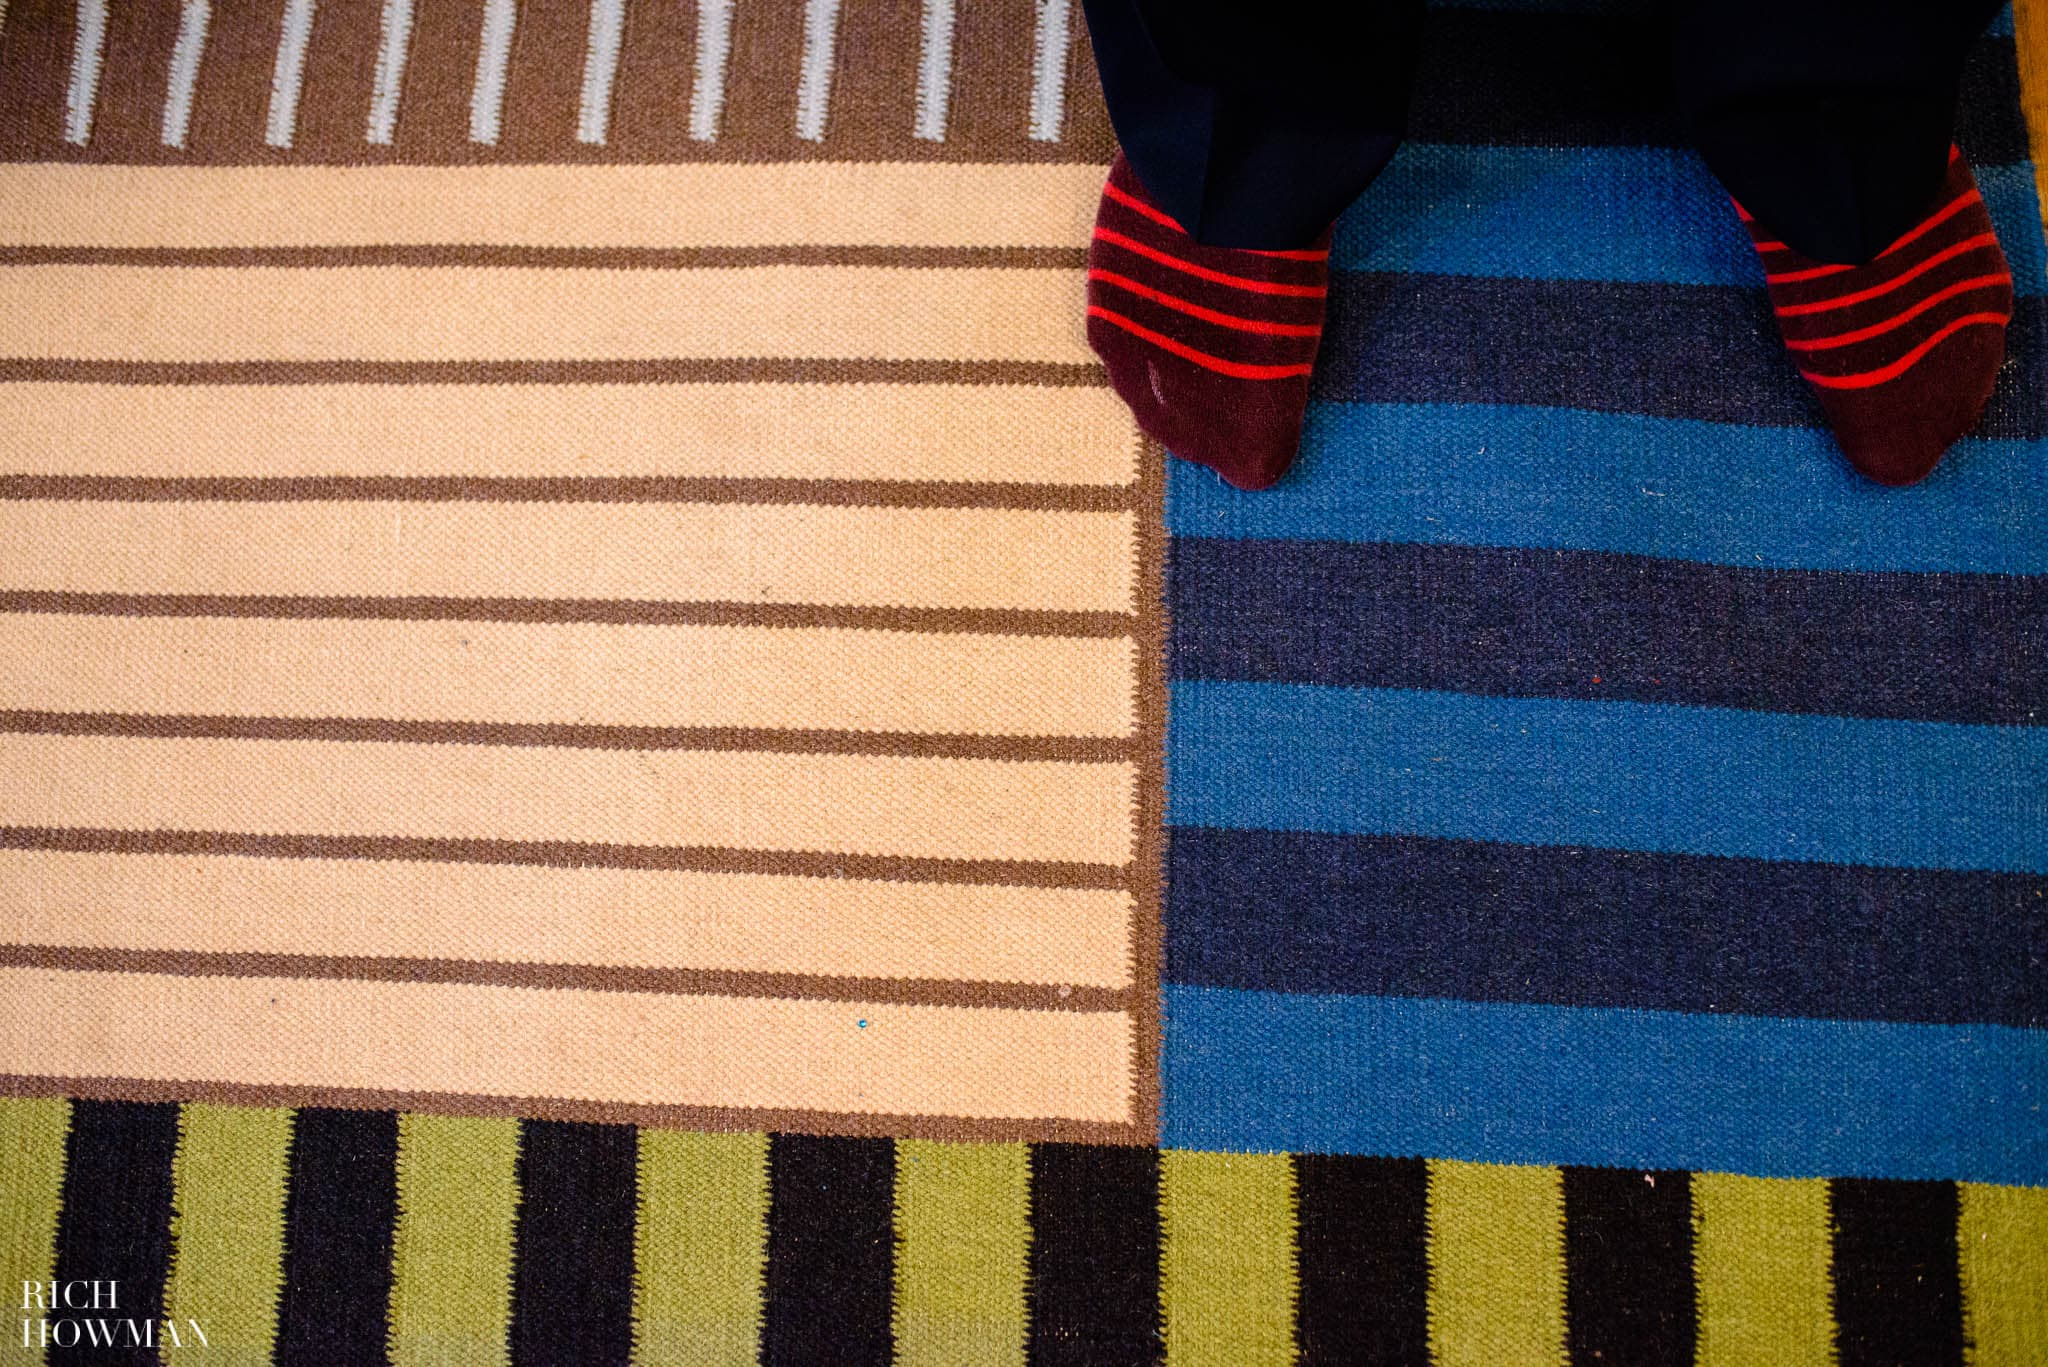 Striped socks on a striped rug